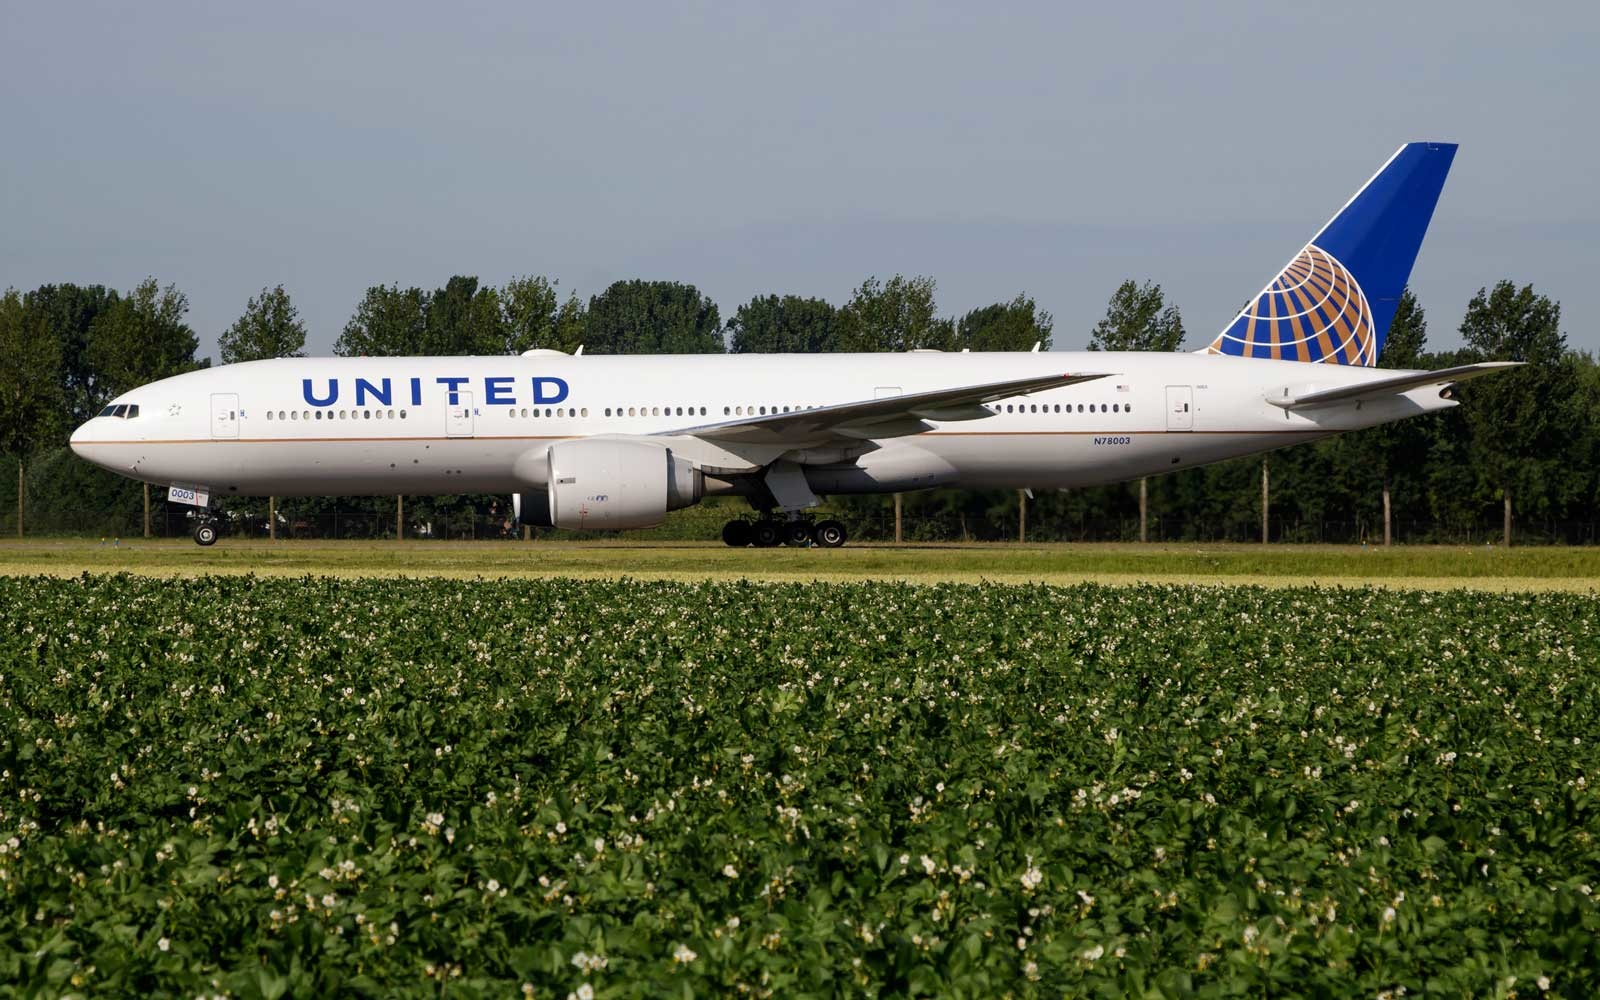 United is adding new international routes across the globe